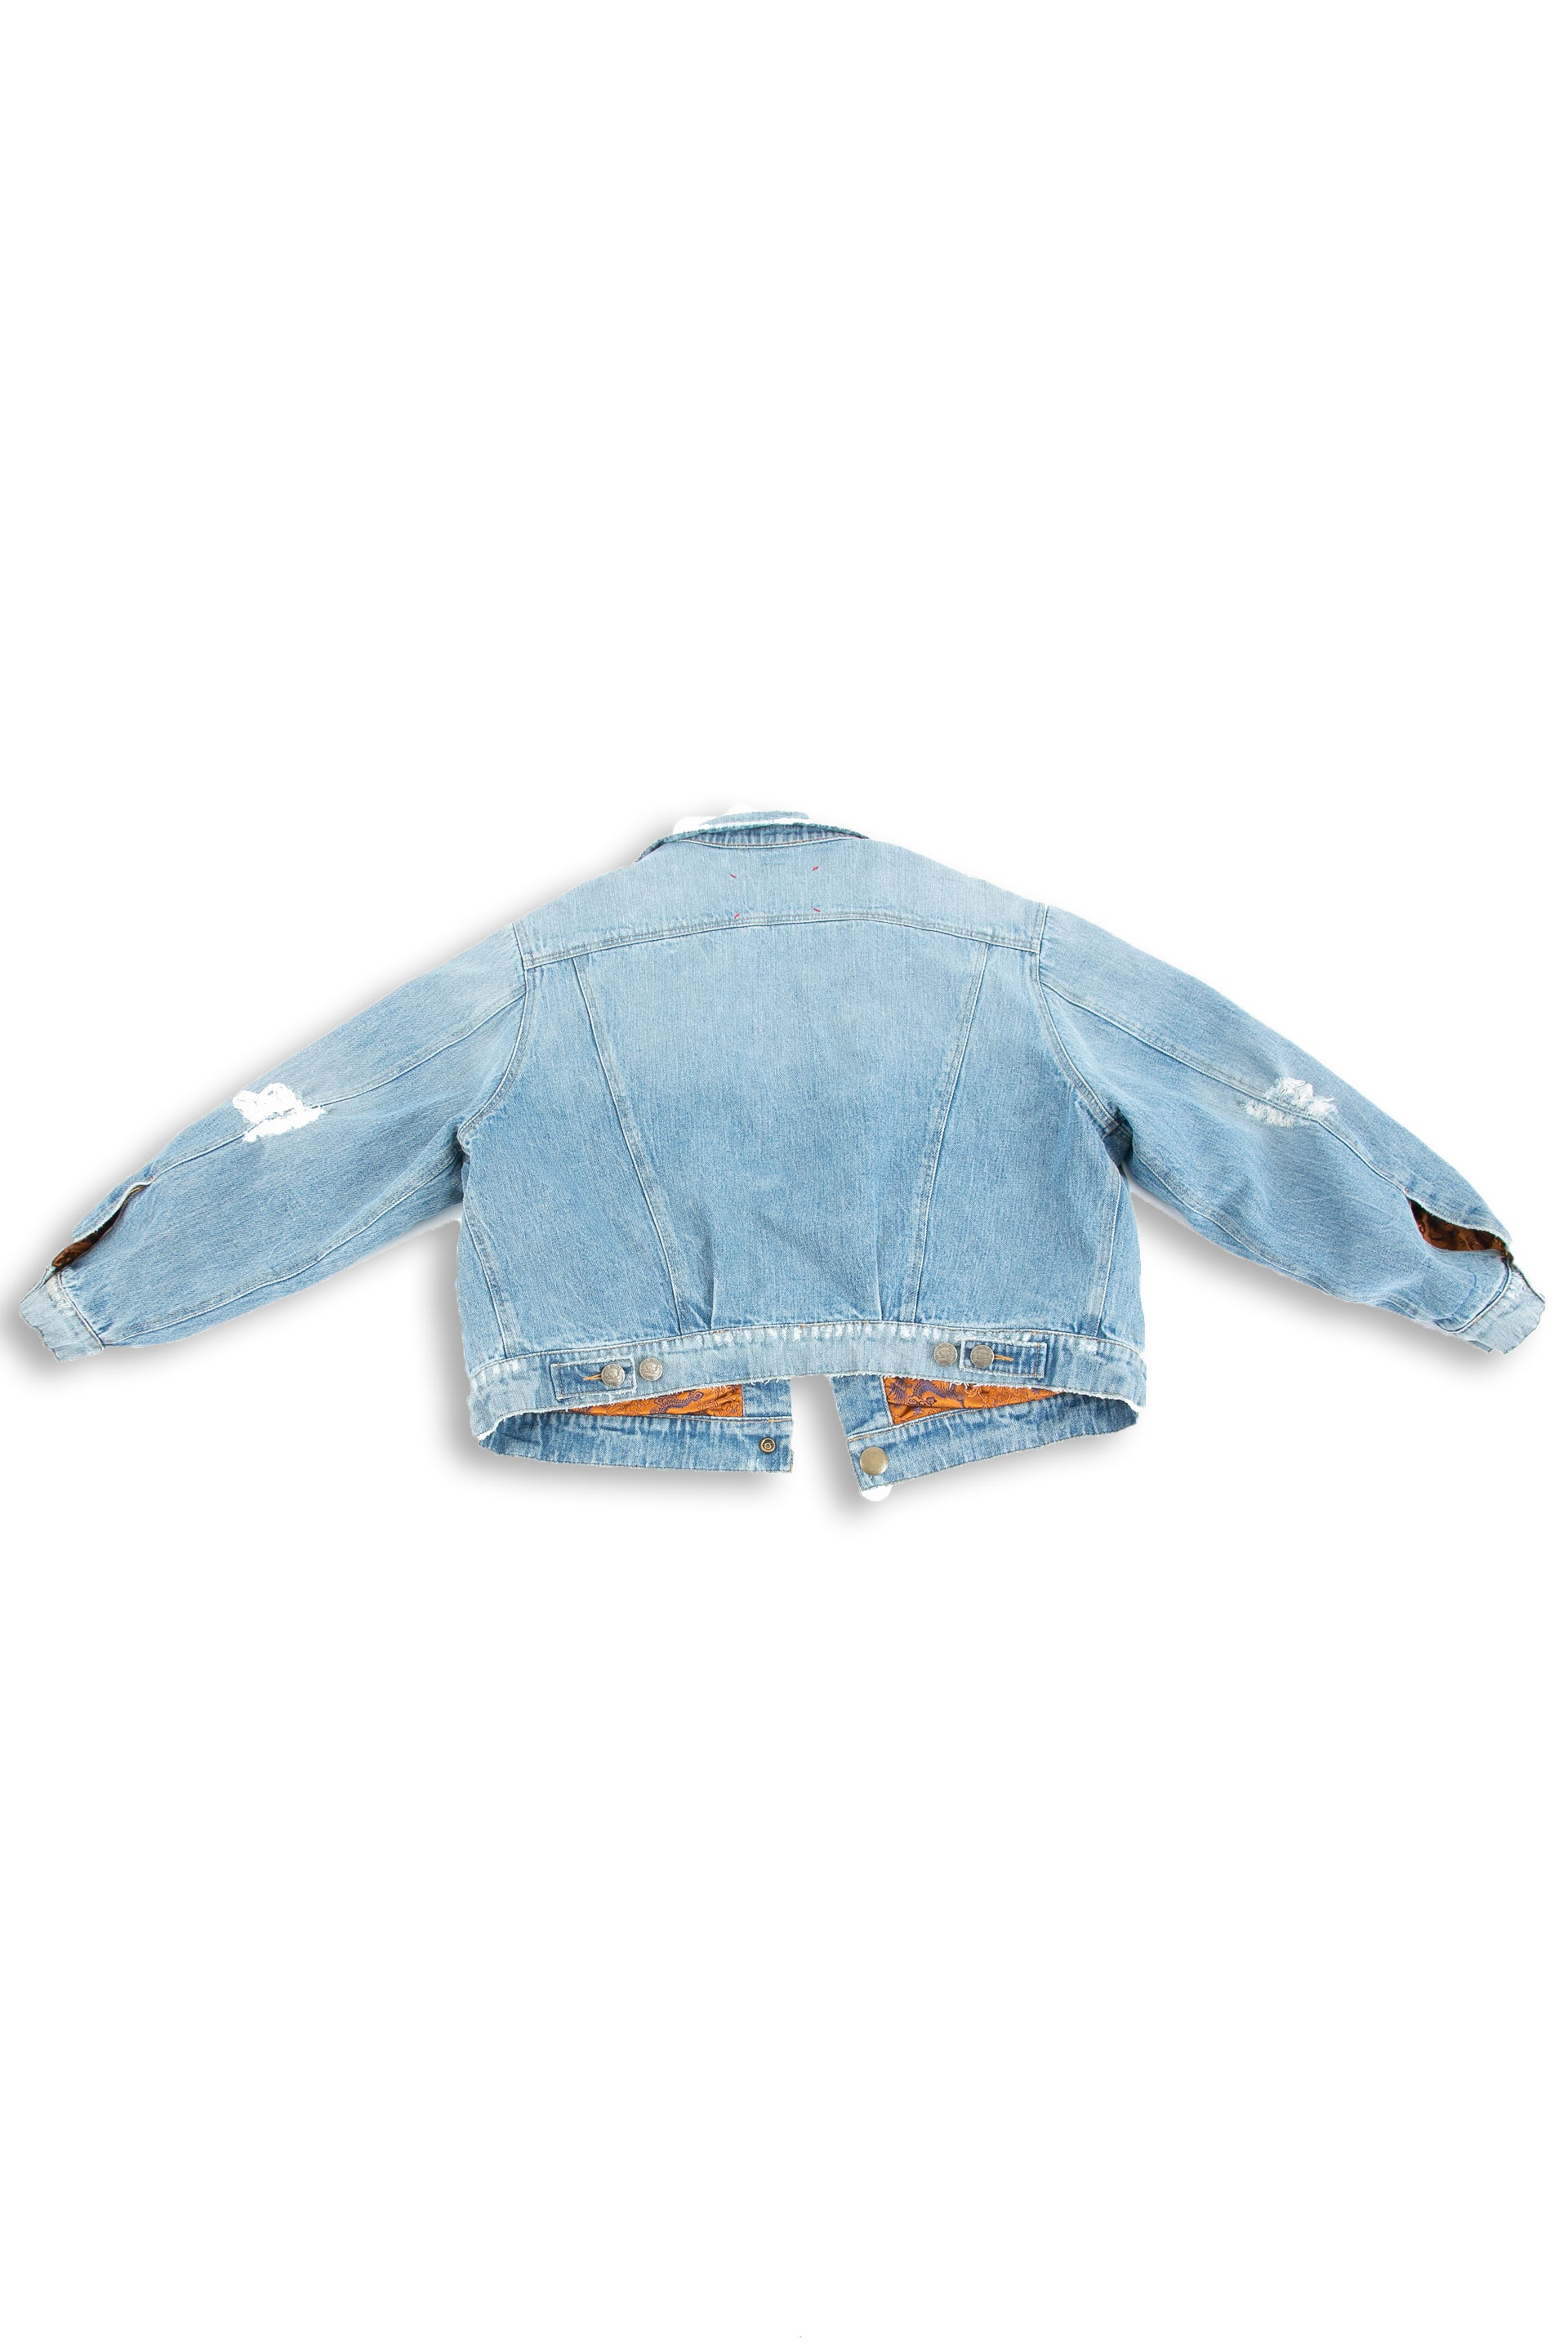 Backside of Dynasty Reversible Denim jacket